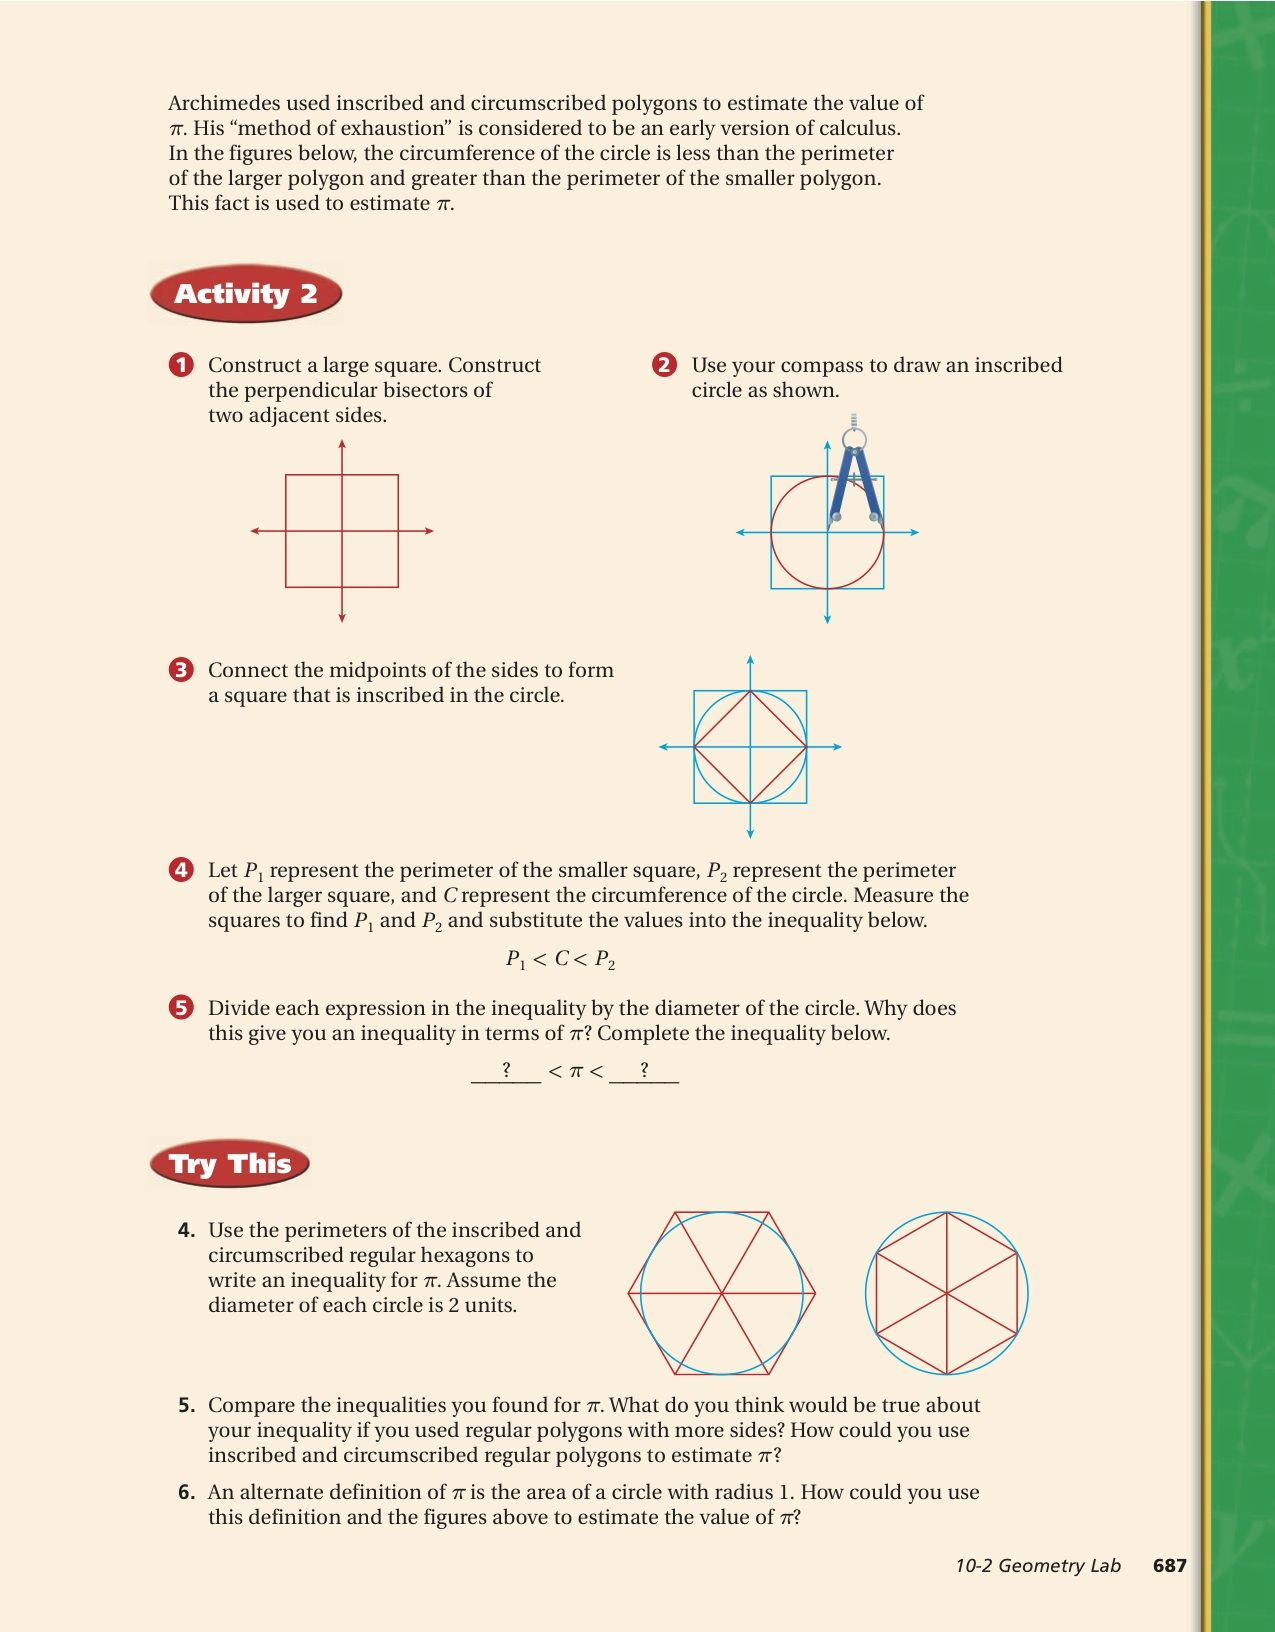 Download This Geometry Lab To Develop The Value Of Pi Visit Http: